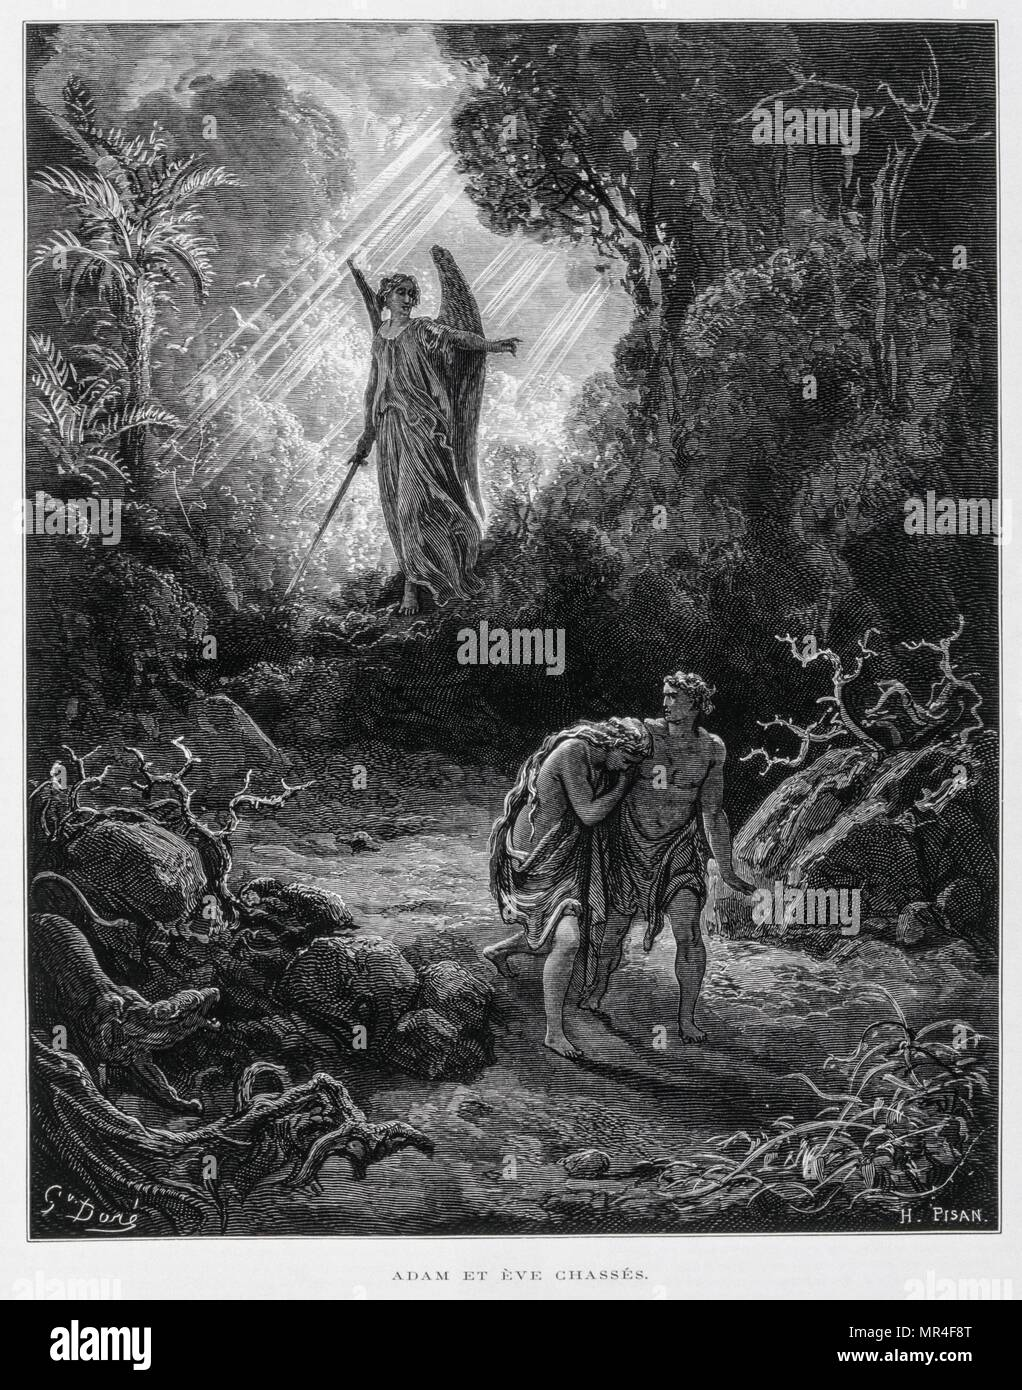 Adam and Eve banished from the Garden of Eden by an angel, Illustration from the Dore Bible 1866. In 1866, the French artist and illustrator Gustave Dore (1832–1883), published a series of 241 wood engravings for a new deluxe edition of the 1843 French translation of the Vulgate Bible, popularly known as the Bible de Tours. This new edition was known as La Grande Bible de Tours and its illustrations were immensely successful Stock Photo